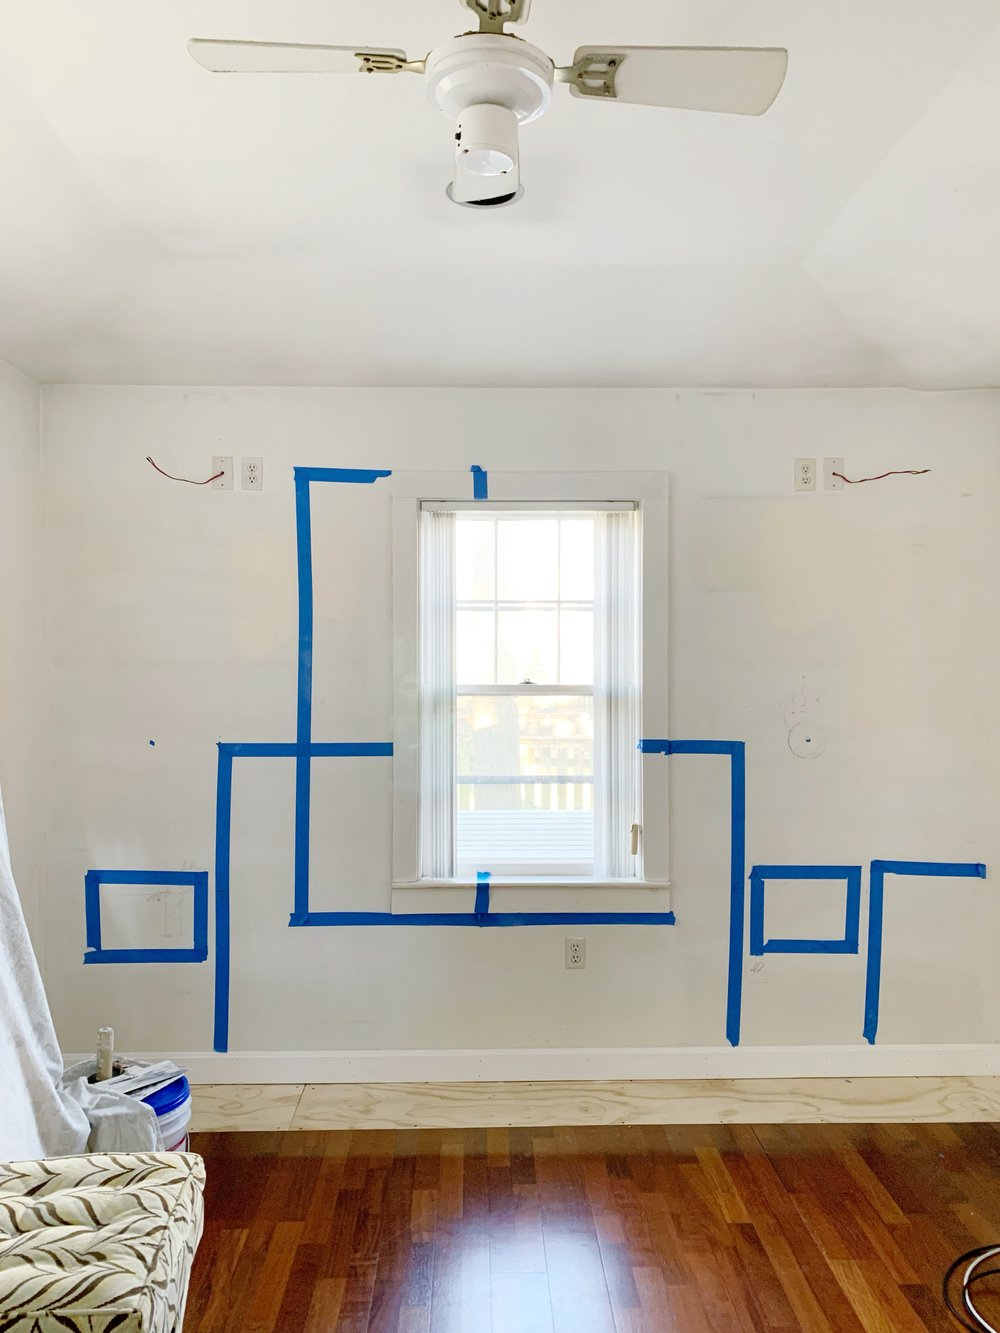 We taped out where the floating night stands will go in relation to the headboard of the bed. This also helped us decide where the sconces should go.